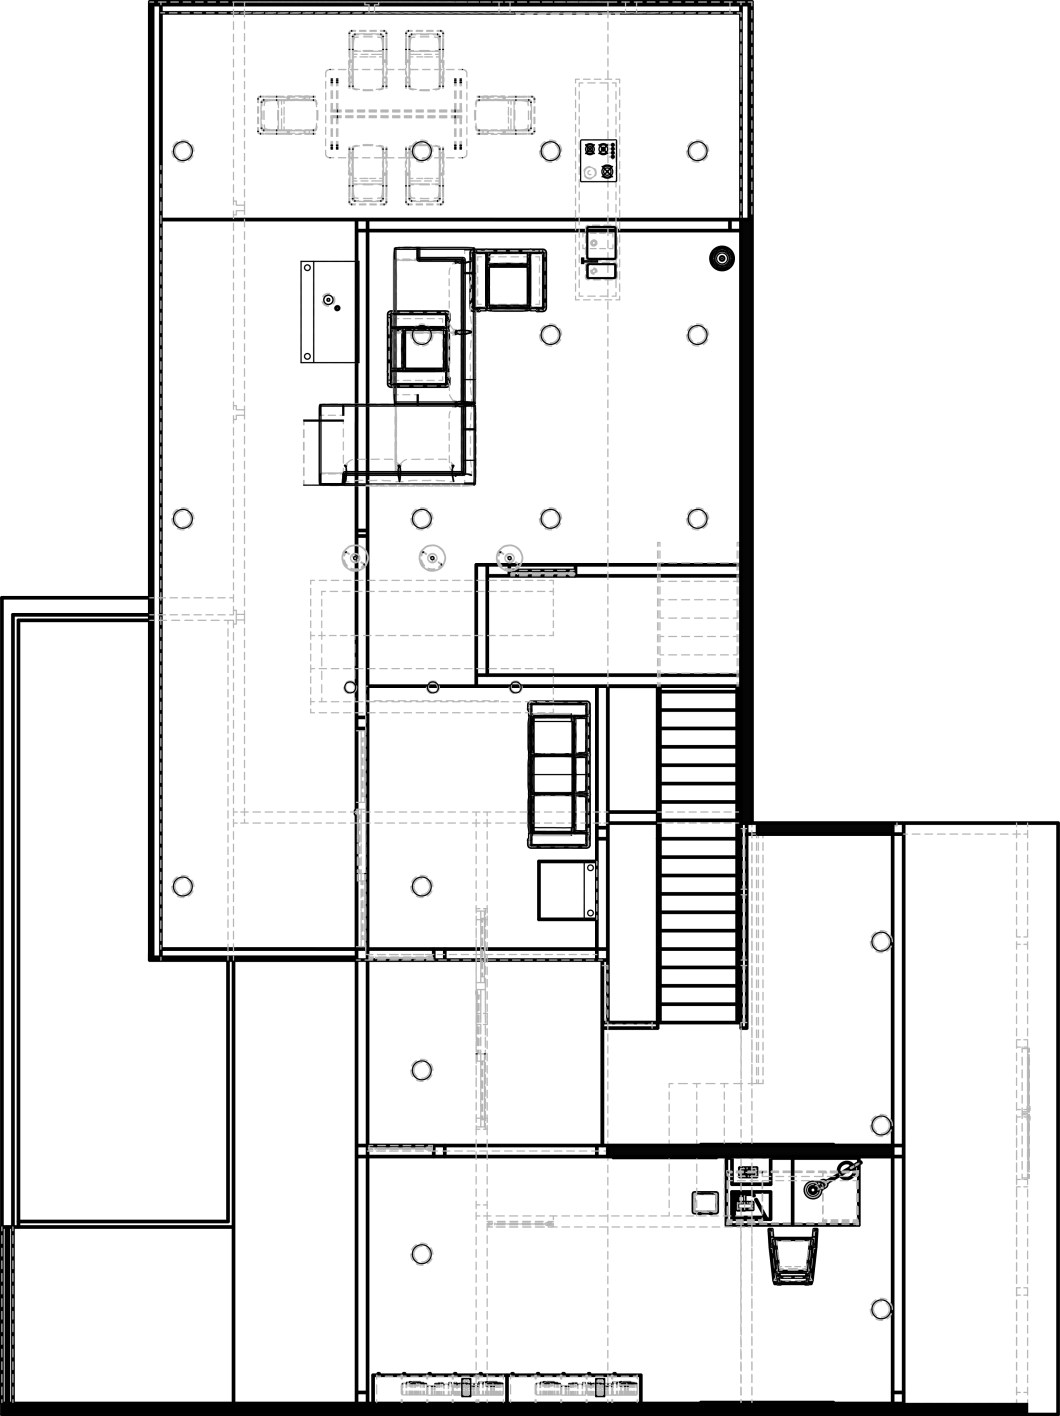 Complete Model 2nd Floor Plan [Converted]